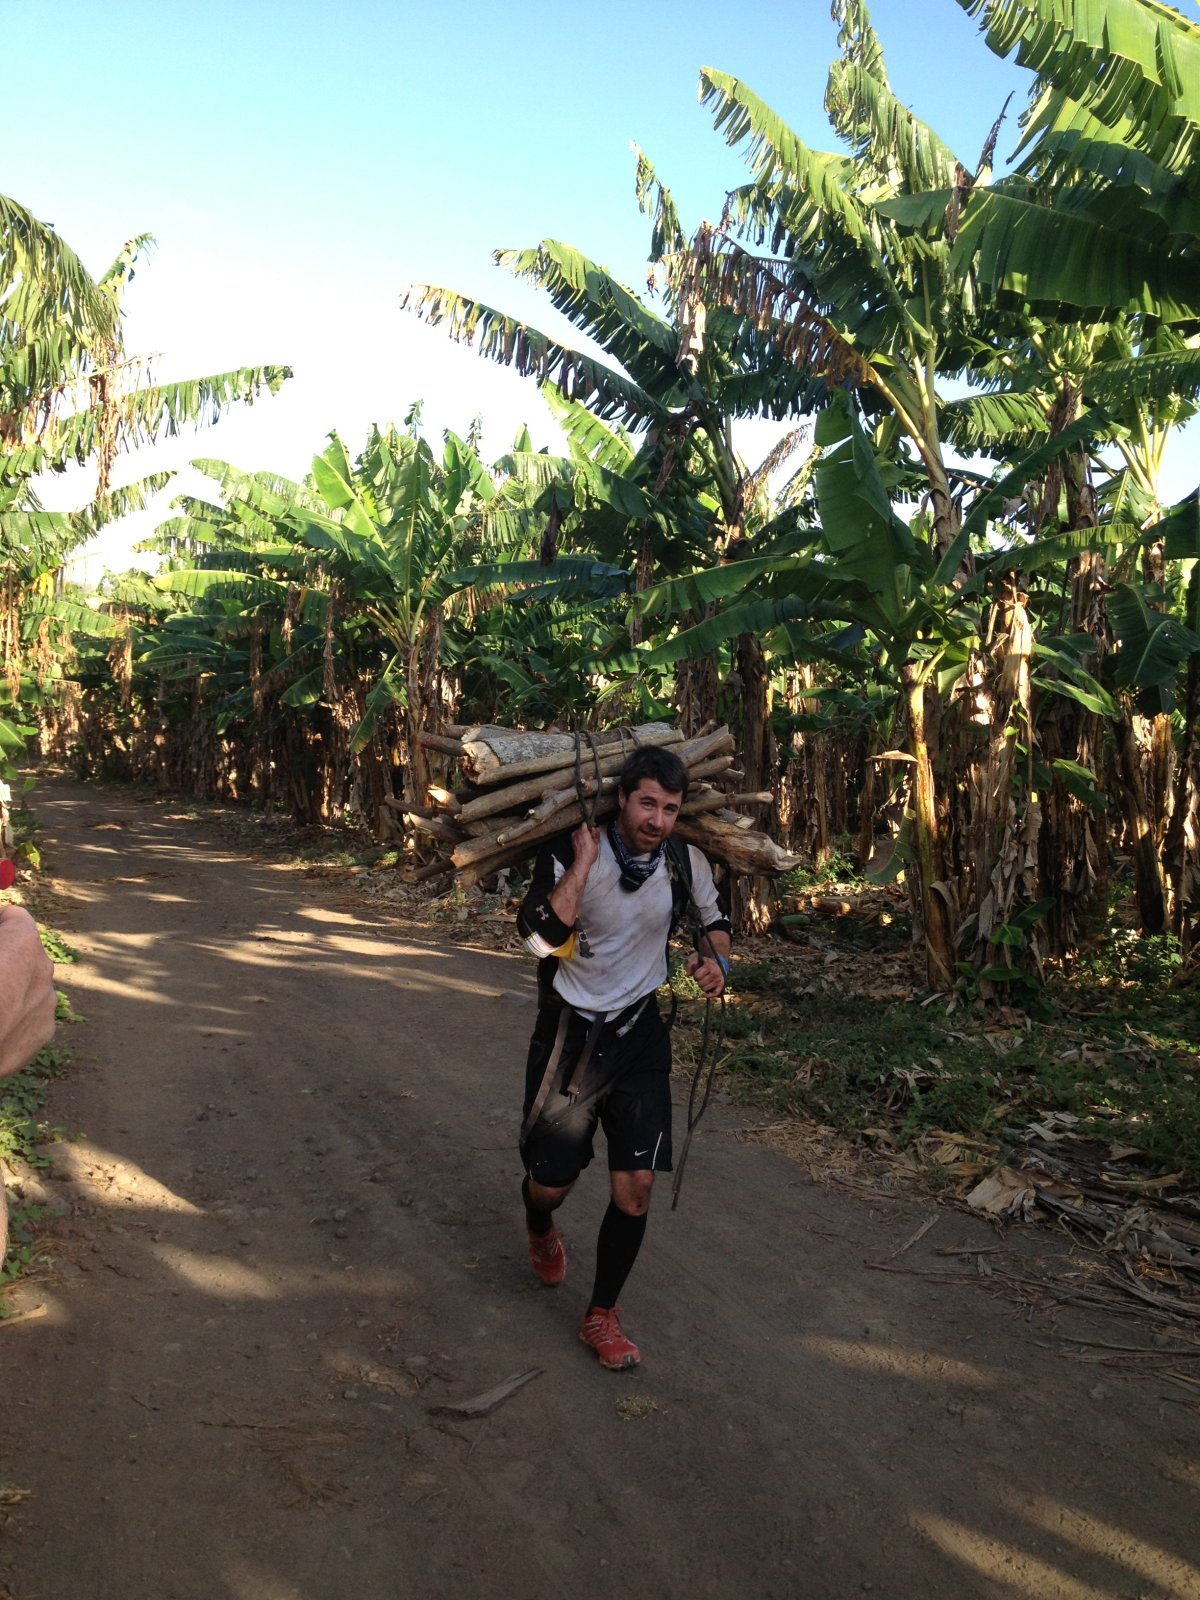 Racers compete in a 20 hour ultra-marathon meets obstacle race in Nicaragua - image